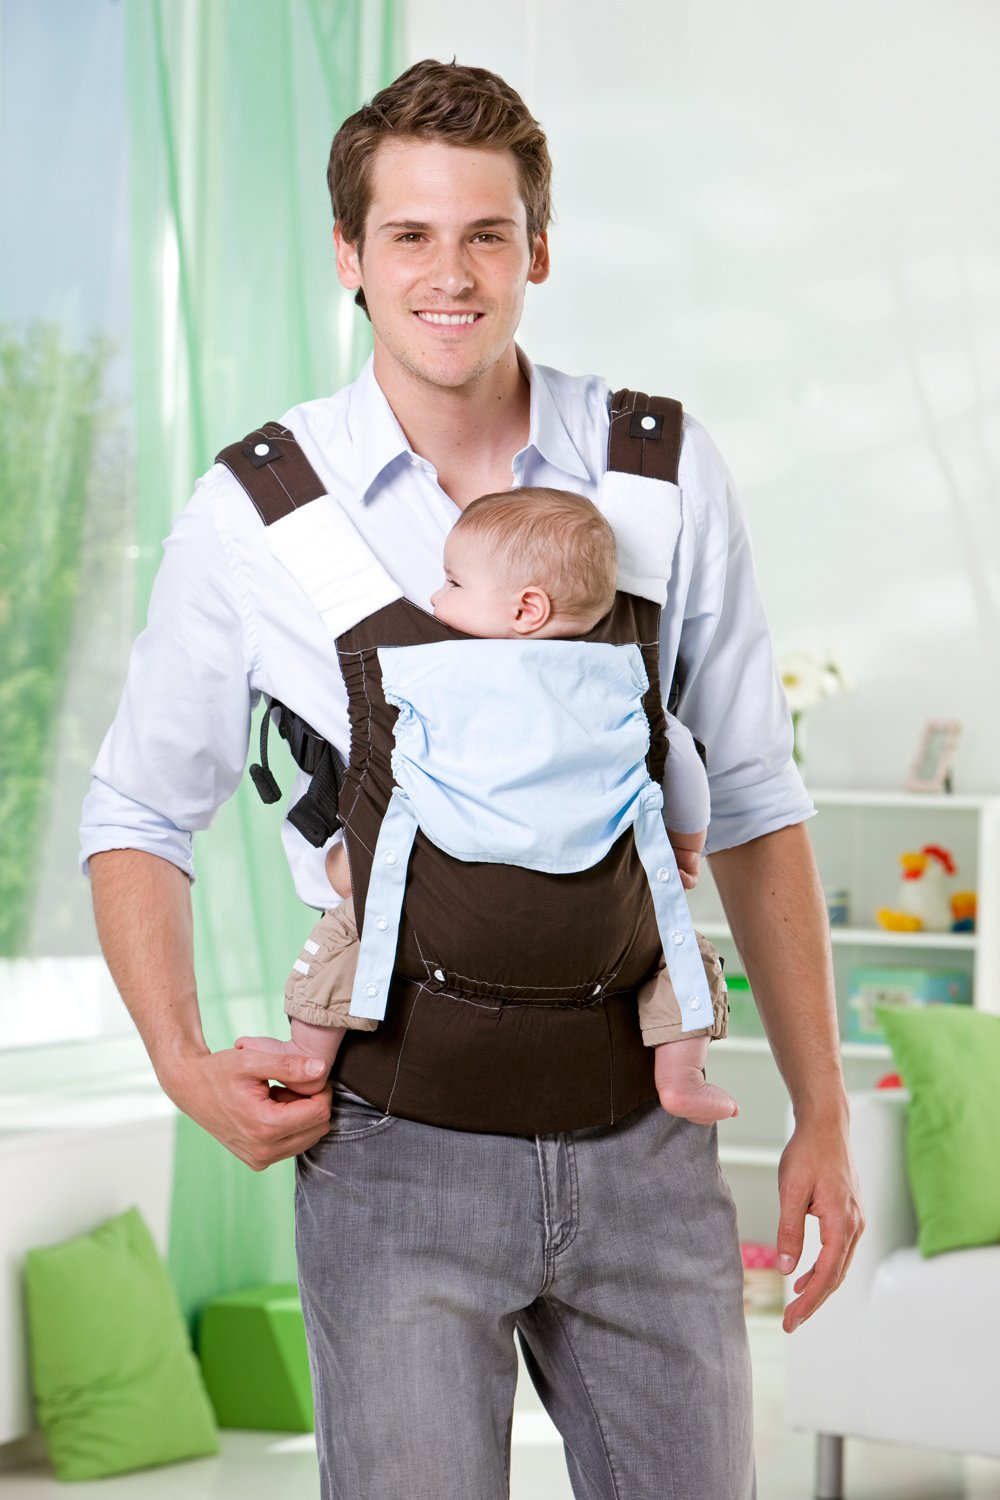 Amazonas Baby Smart Carrier - Earth AMAZONAS Waist belt length: 78 - 145 cm Flexible bridge: approx. 26 - 33 cm Load capacity: max. 3.5 - 15 kg 2